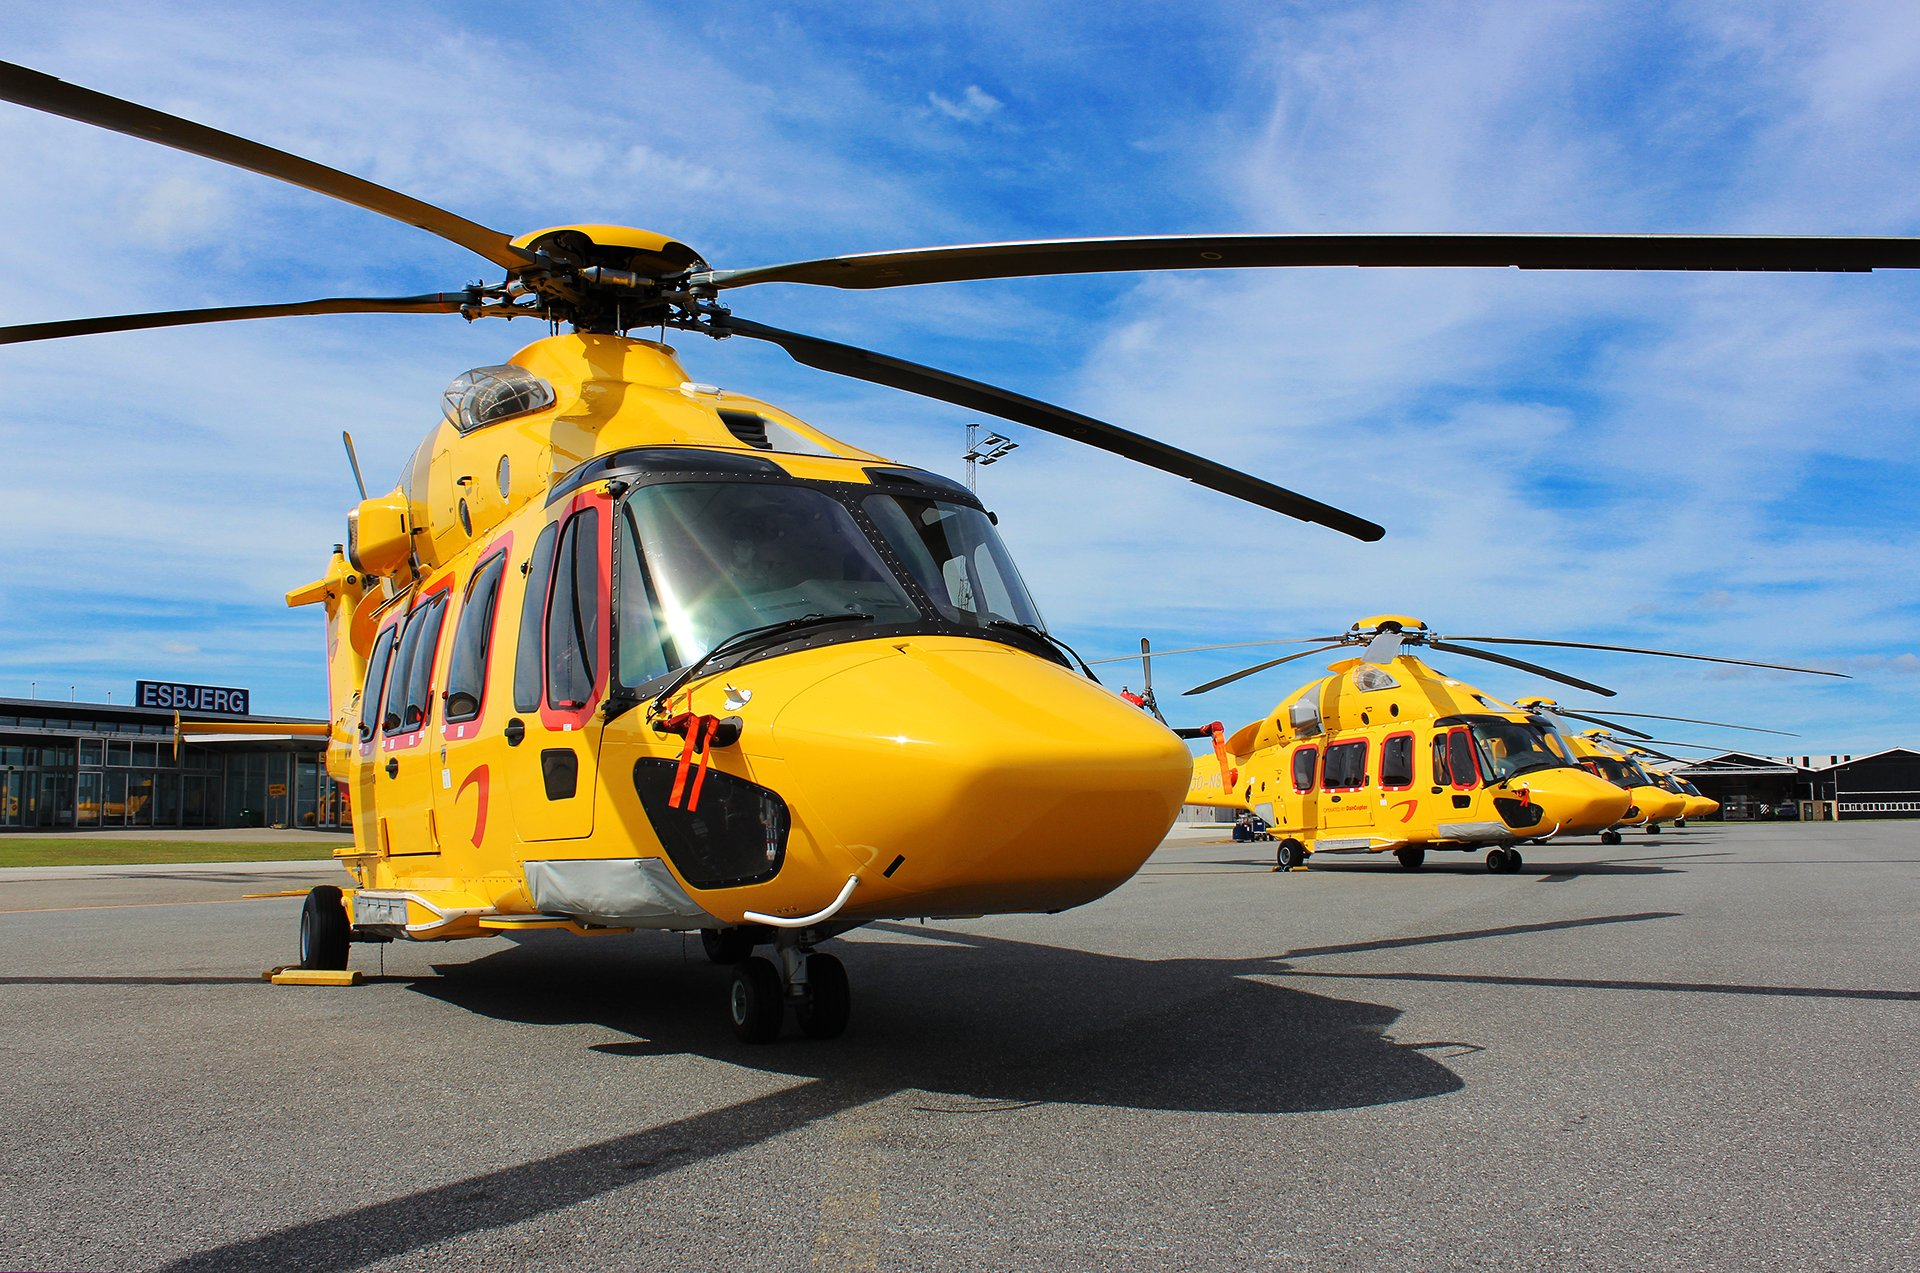 H175 helicopters rest on tarmac